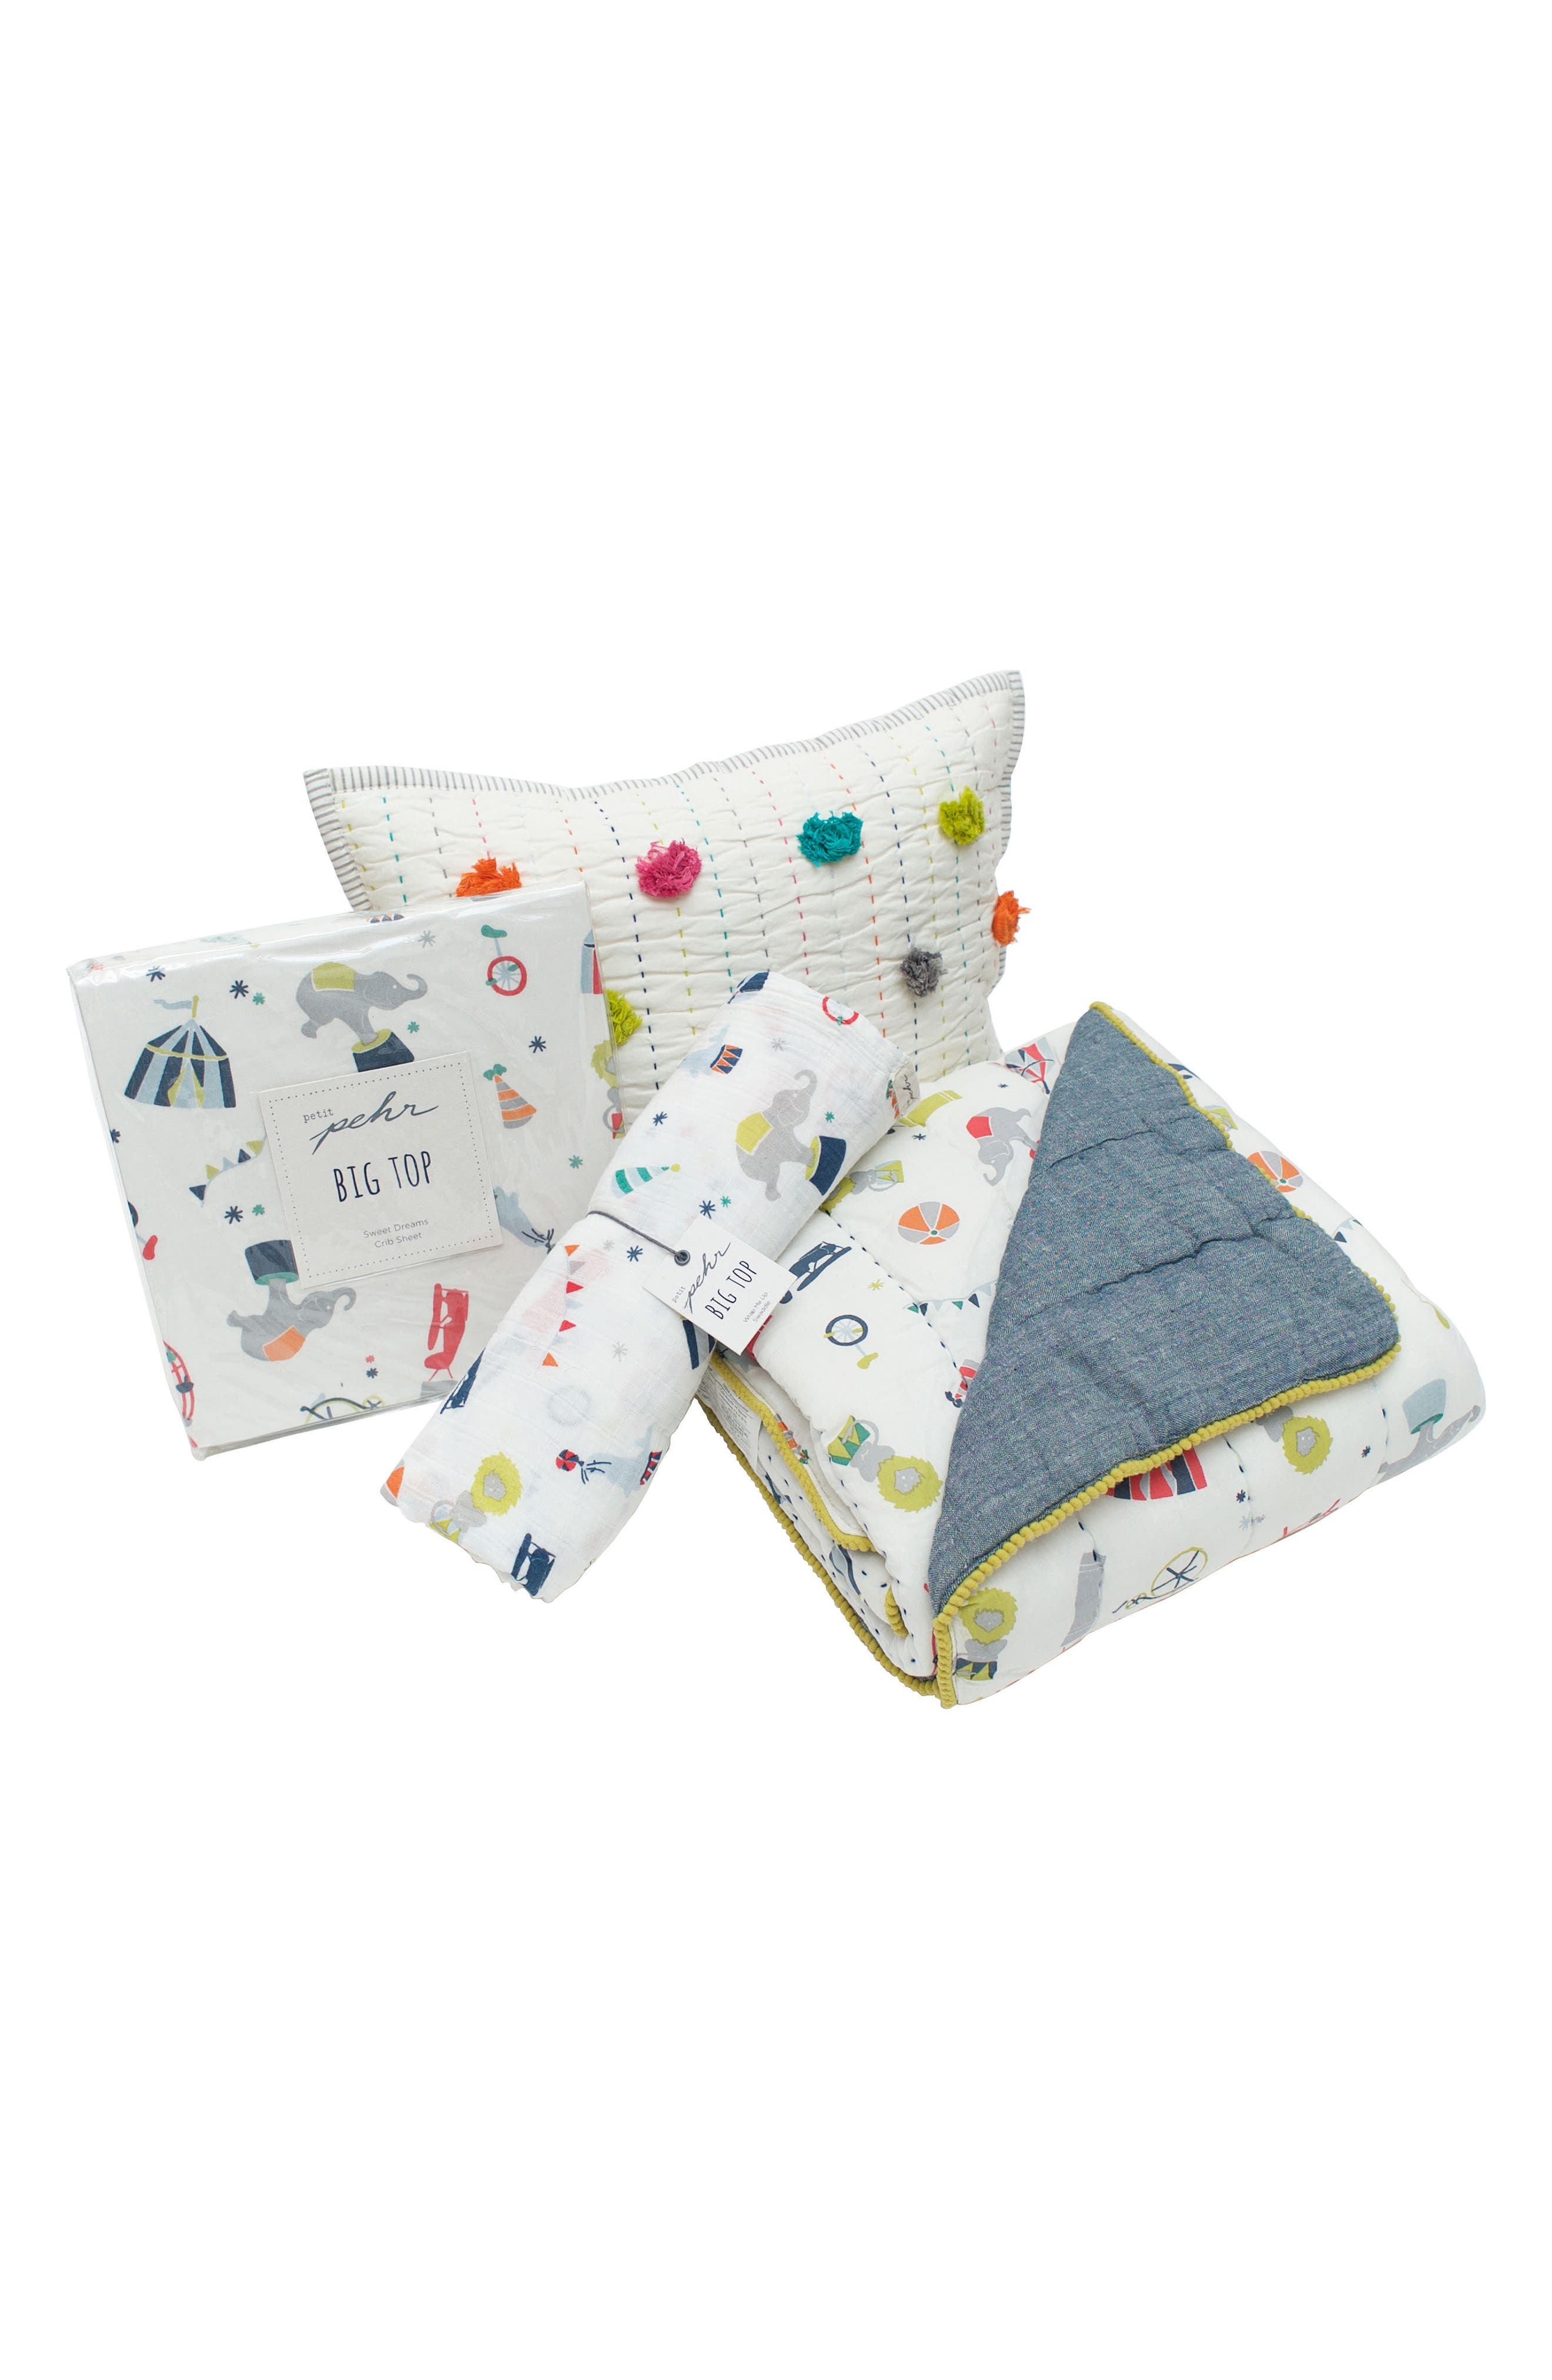 Petit Pehr Showers Crib Sheet, Swaddle, Blanket & Pillow Set (Baby)